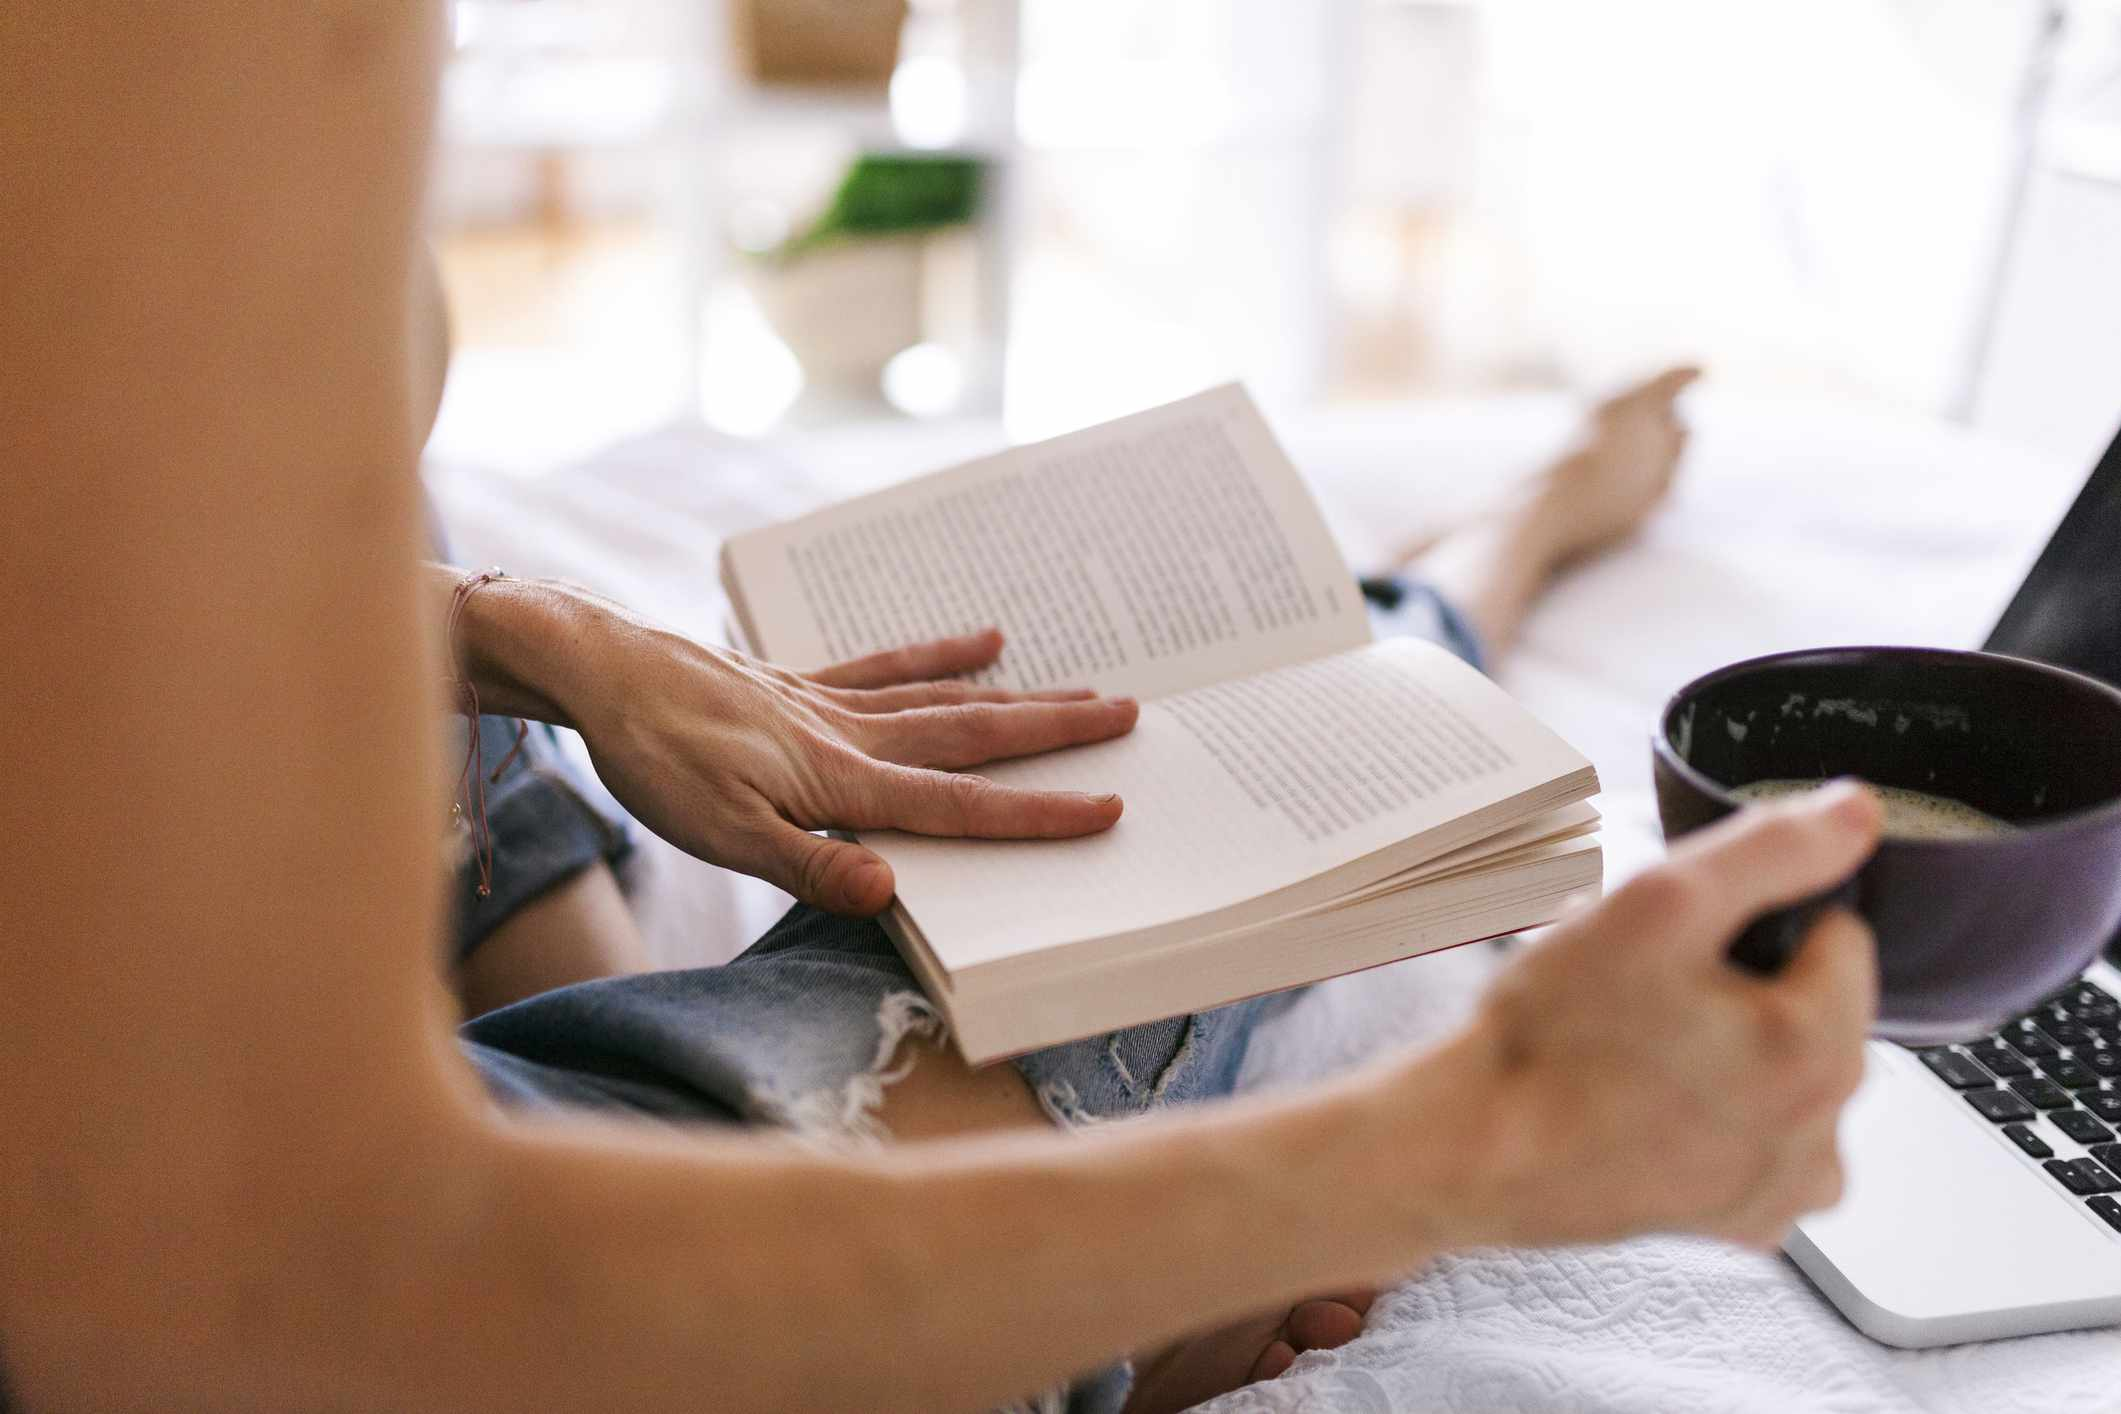 A woman sitting on a bed, reading a book with her laptop open a cup of coffee in her hand.